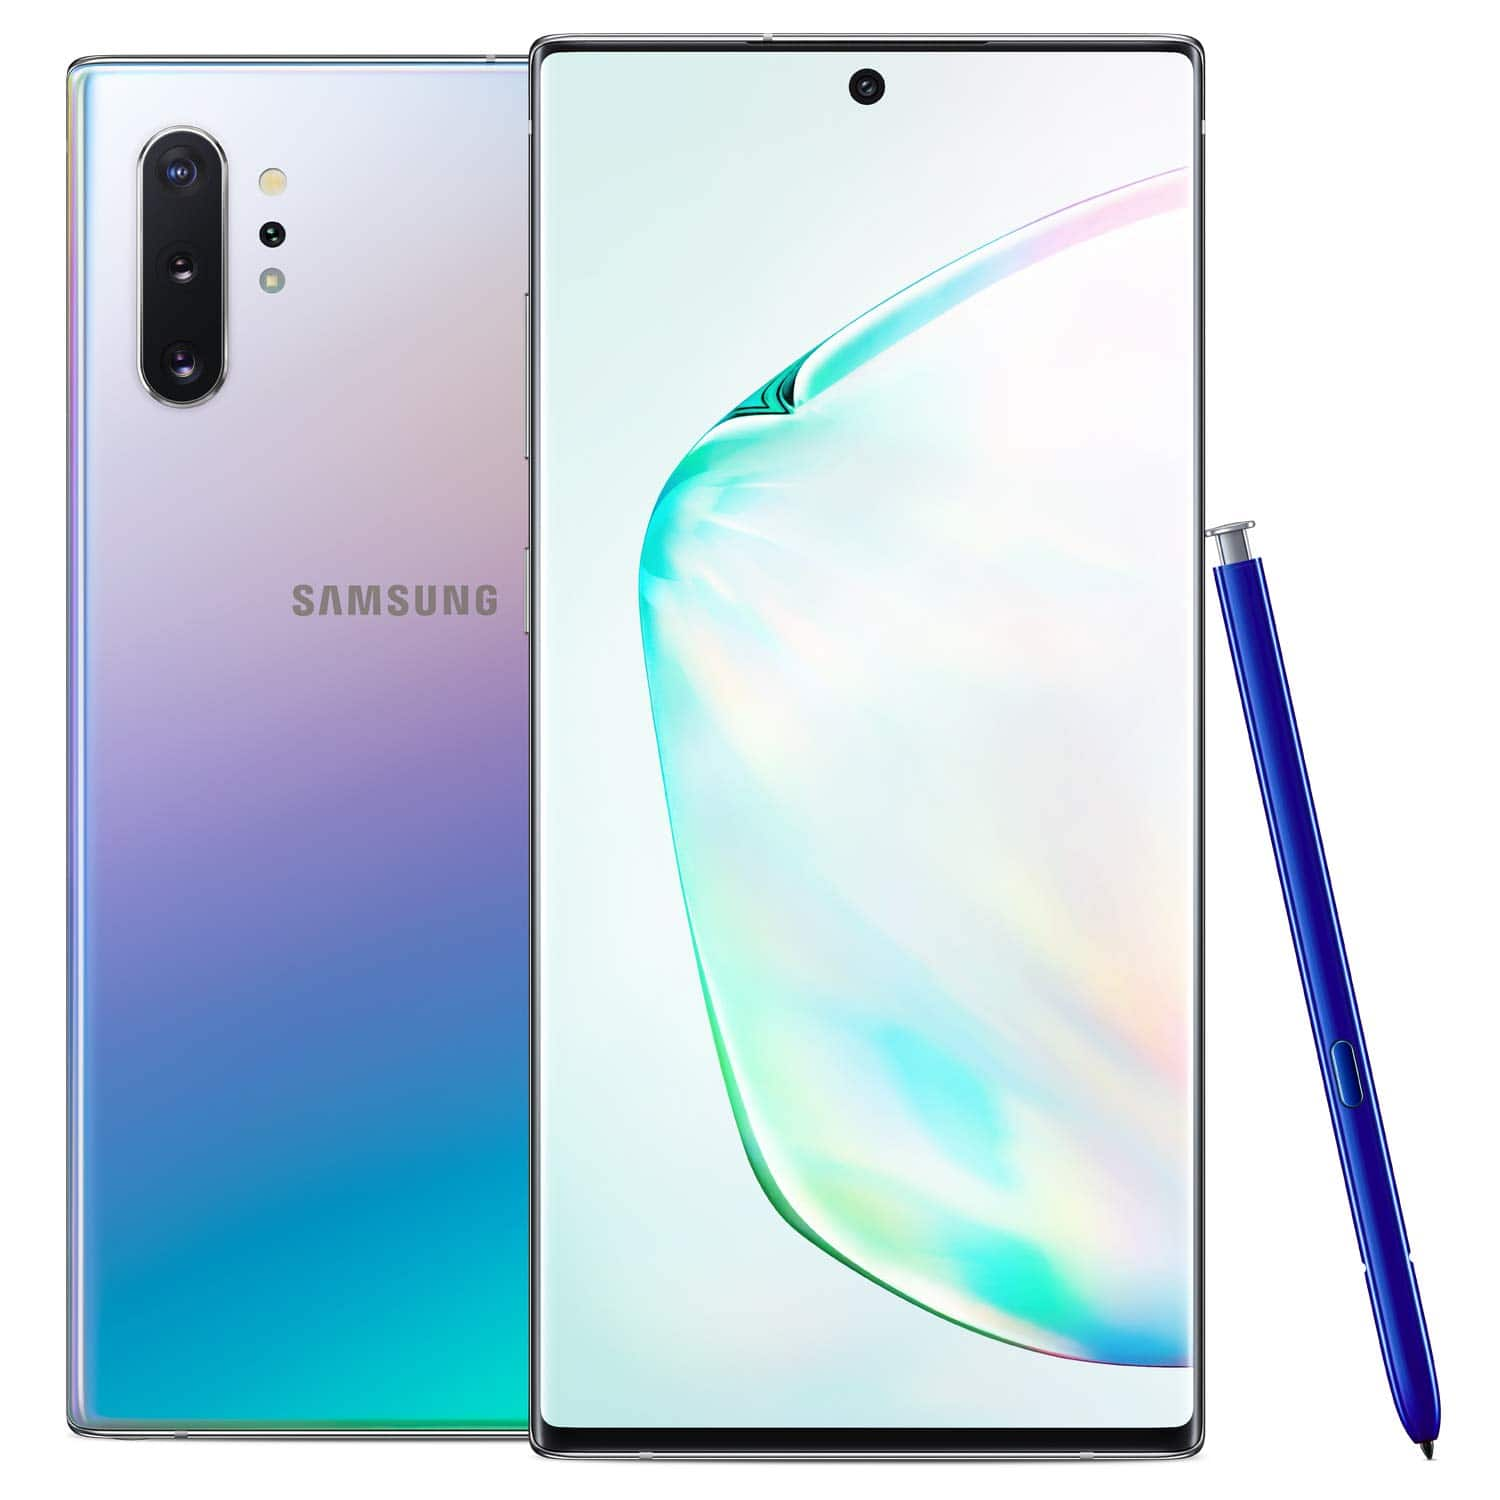 Warehouse deals 20% off Samsung Galaxy Note 10+ Plus Factory Unlocked Cell Phone with 256GB (U.S. Warranty) $611